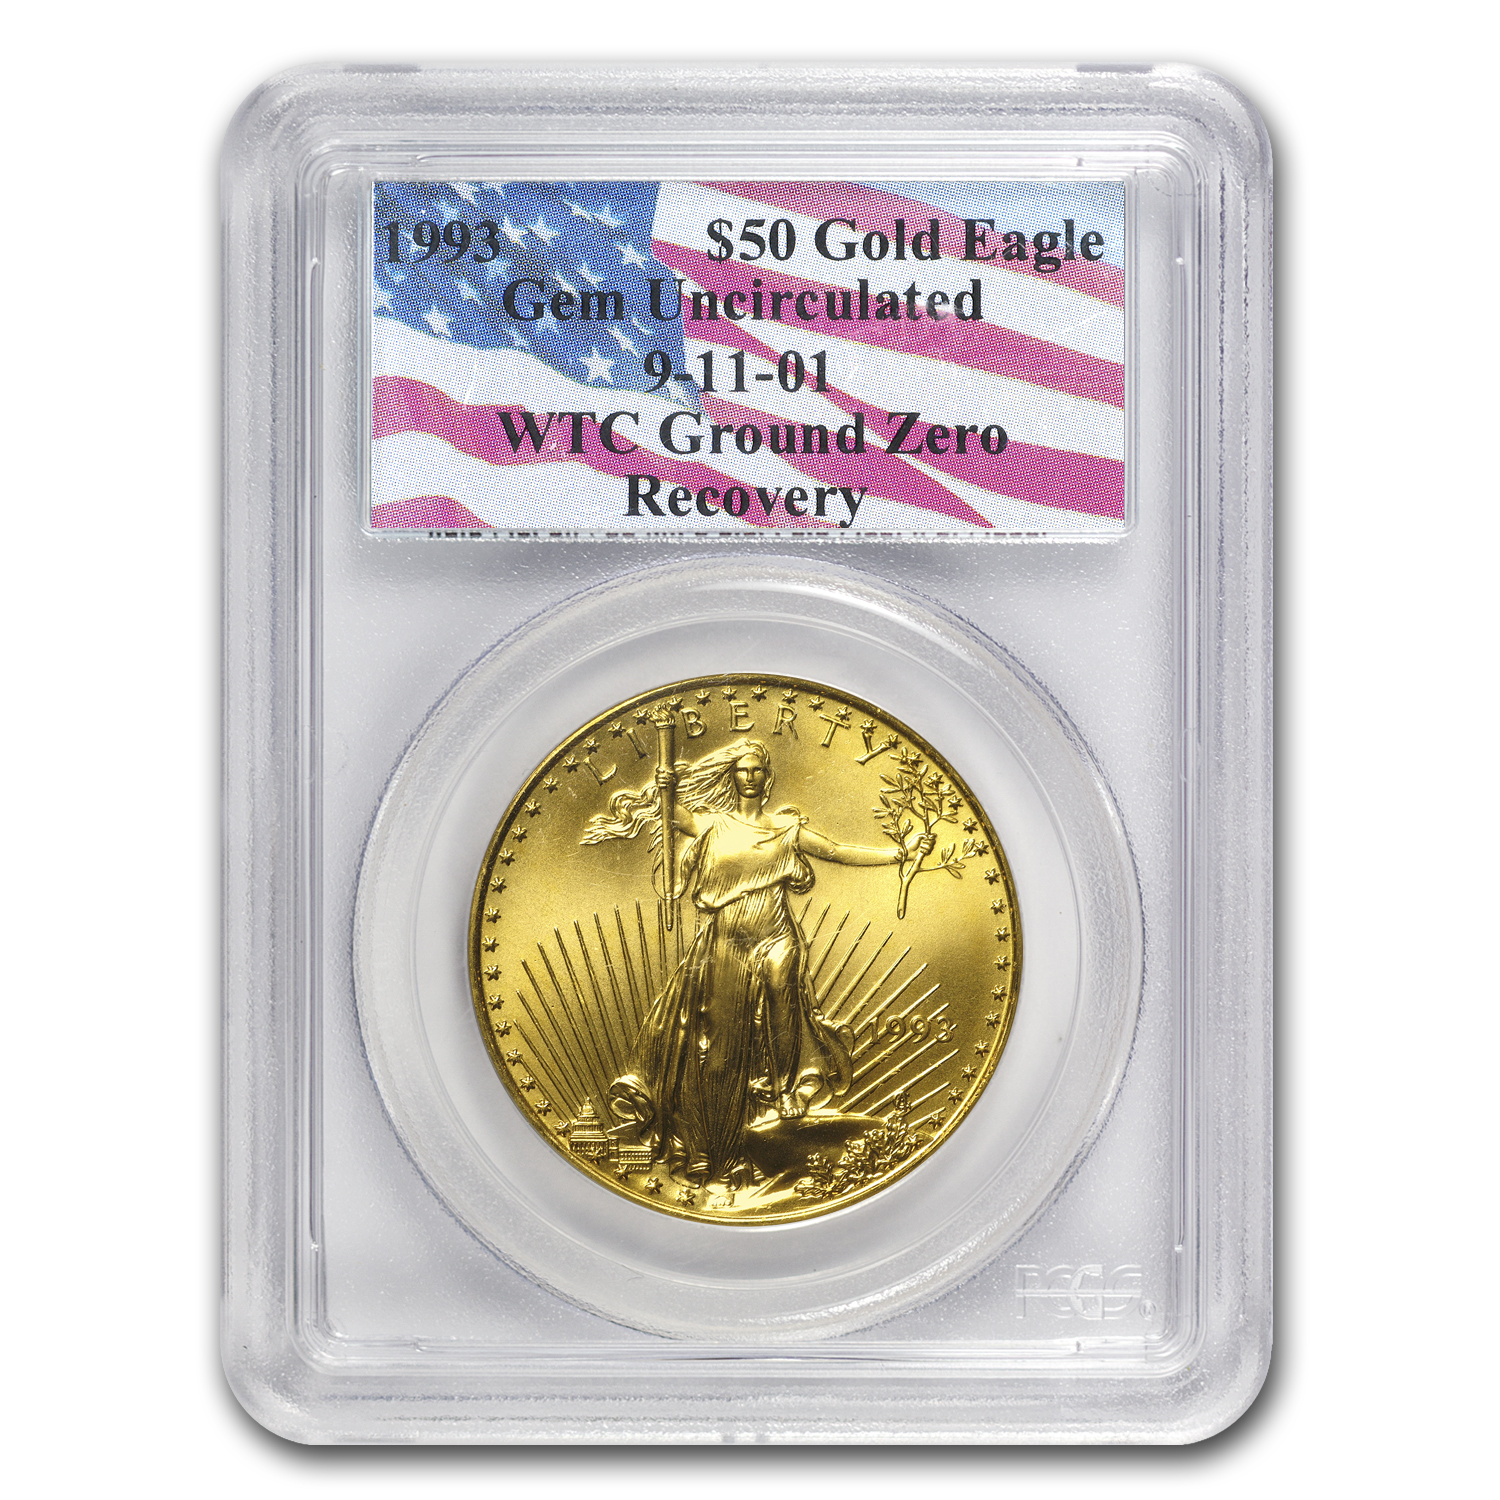 1993 1 oz Gold American Eagle Gem Unc PCGS (World Trade Center)